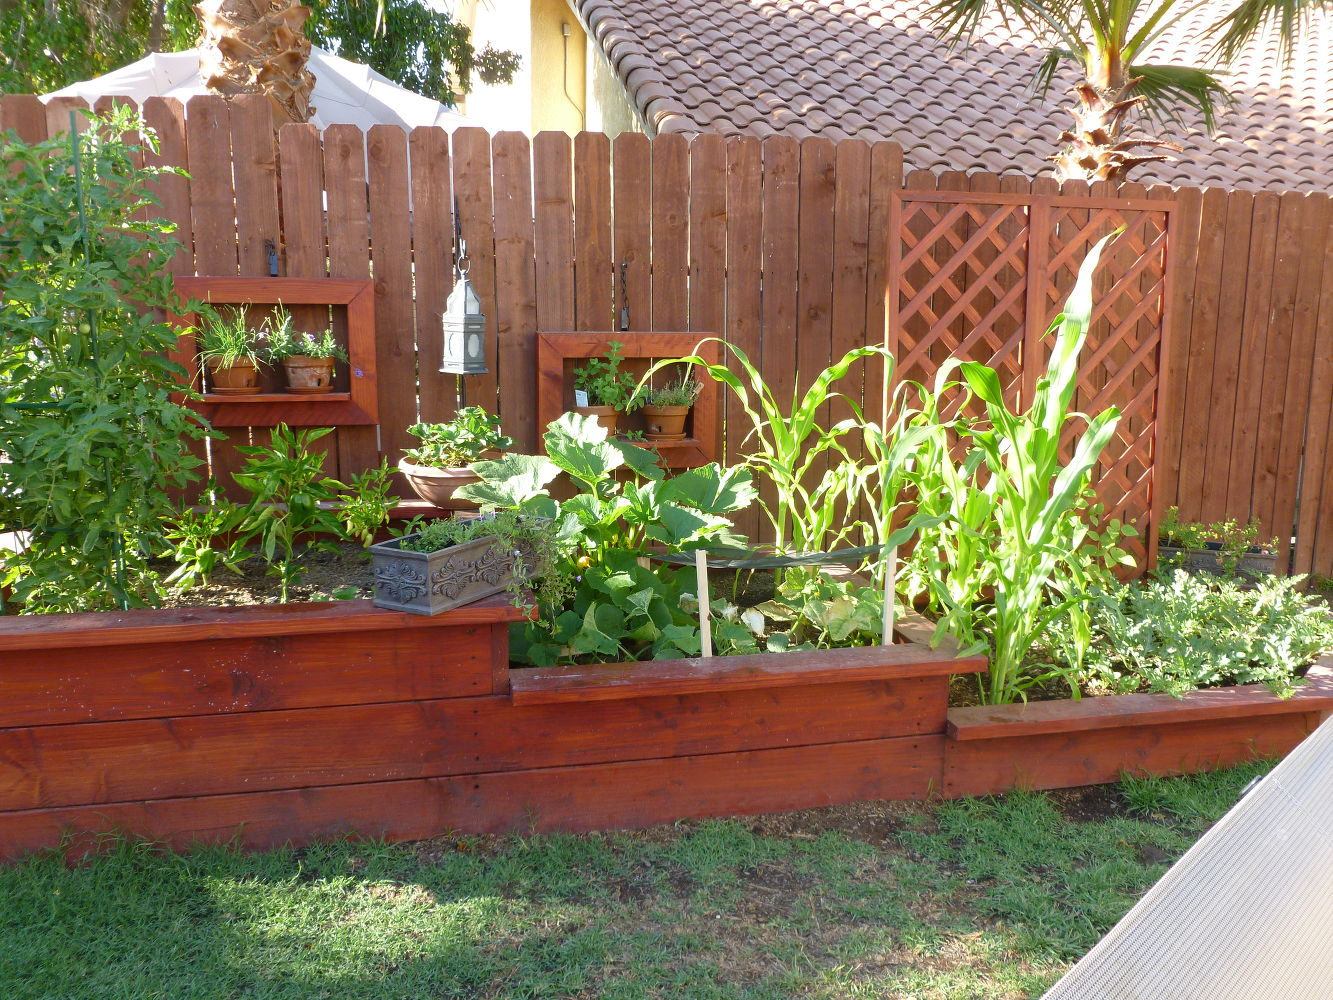 13 easiest ways to build a raised vegetable bed in your for Raised vegetable garden beds